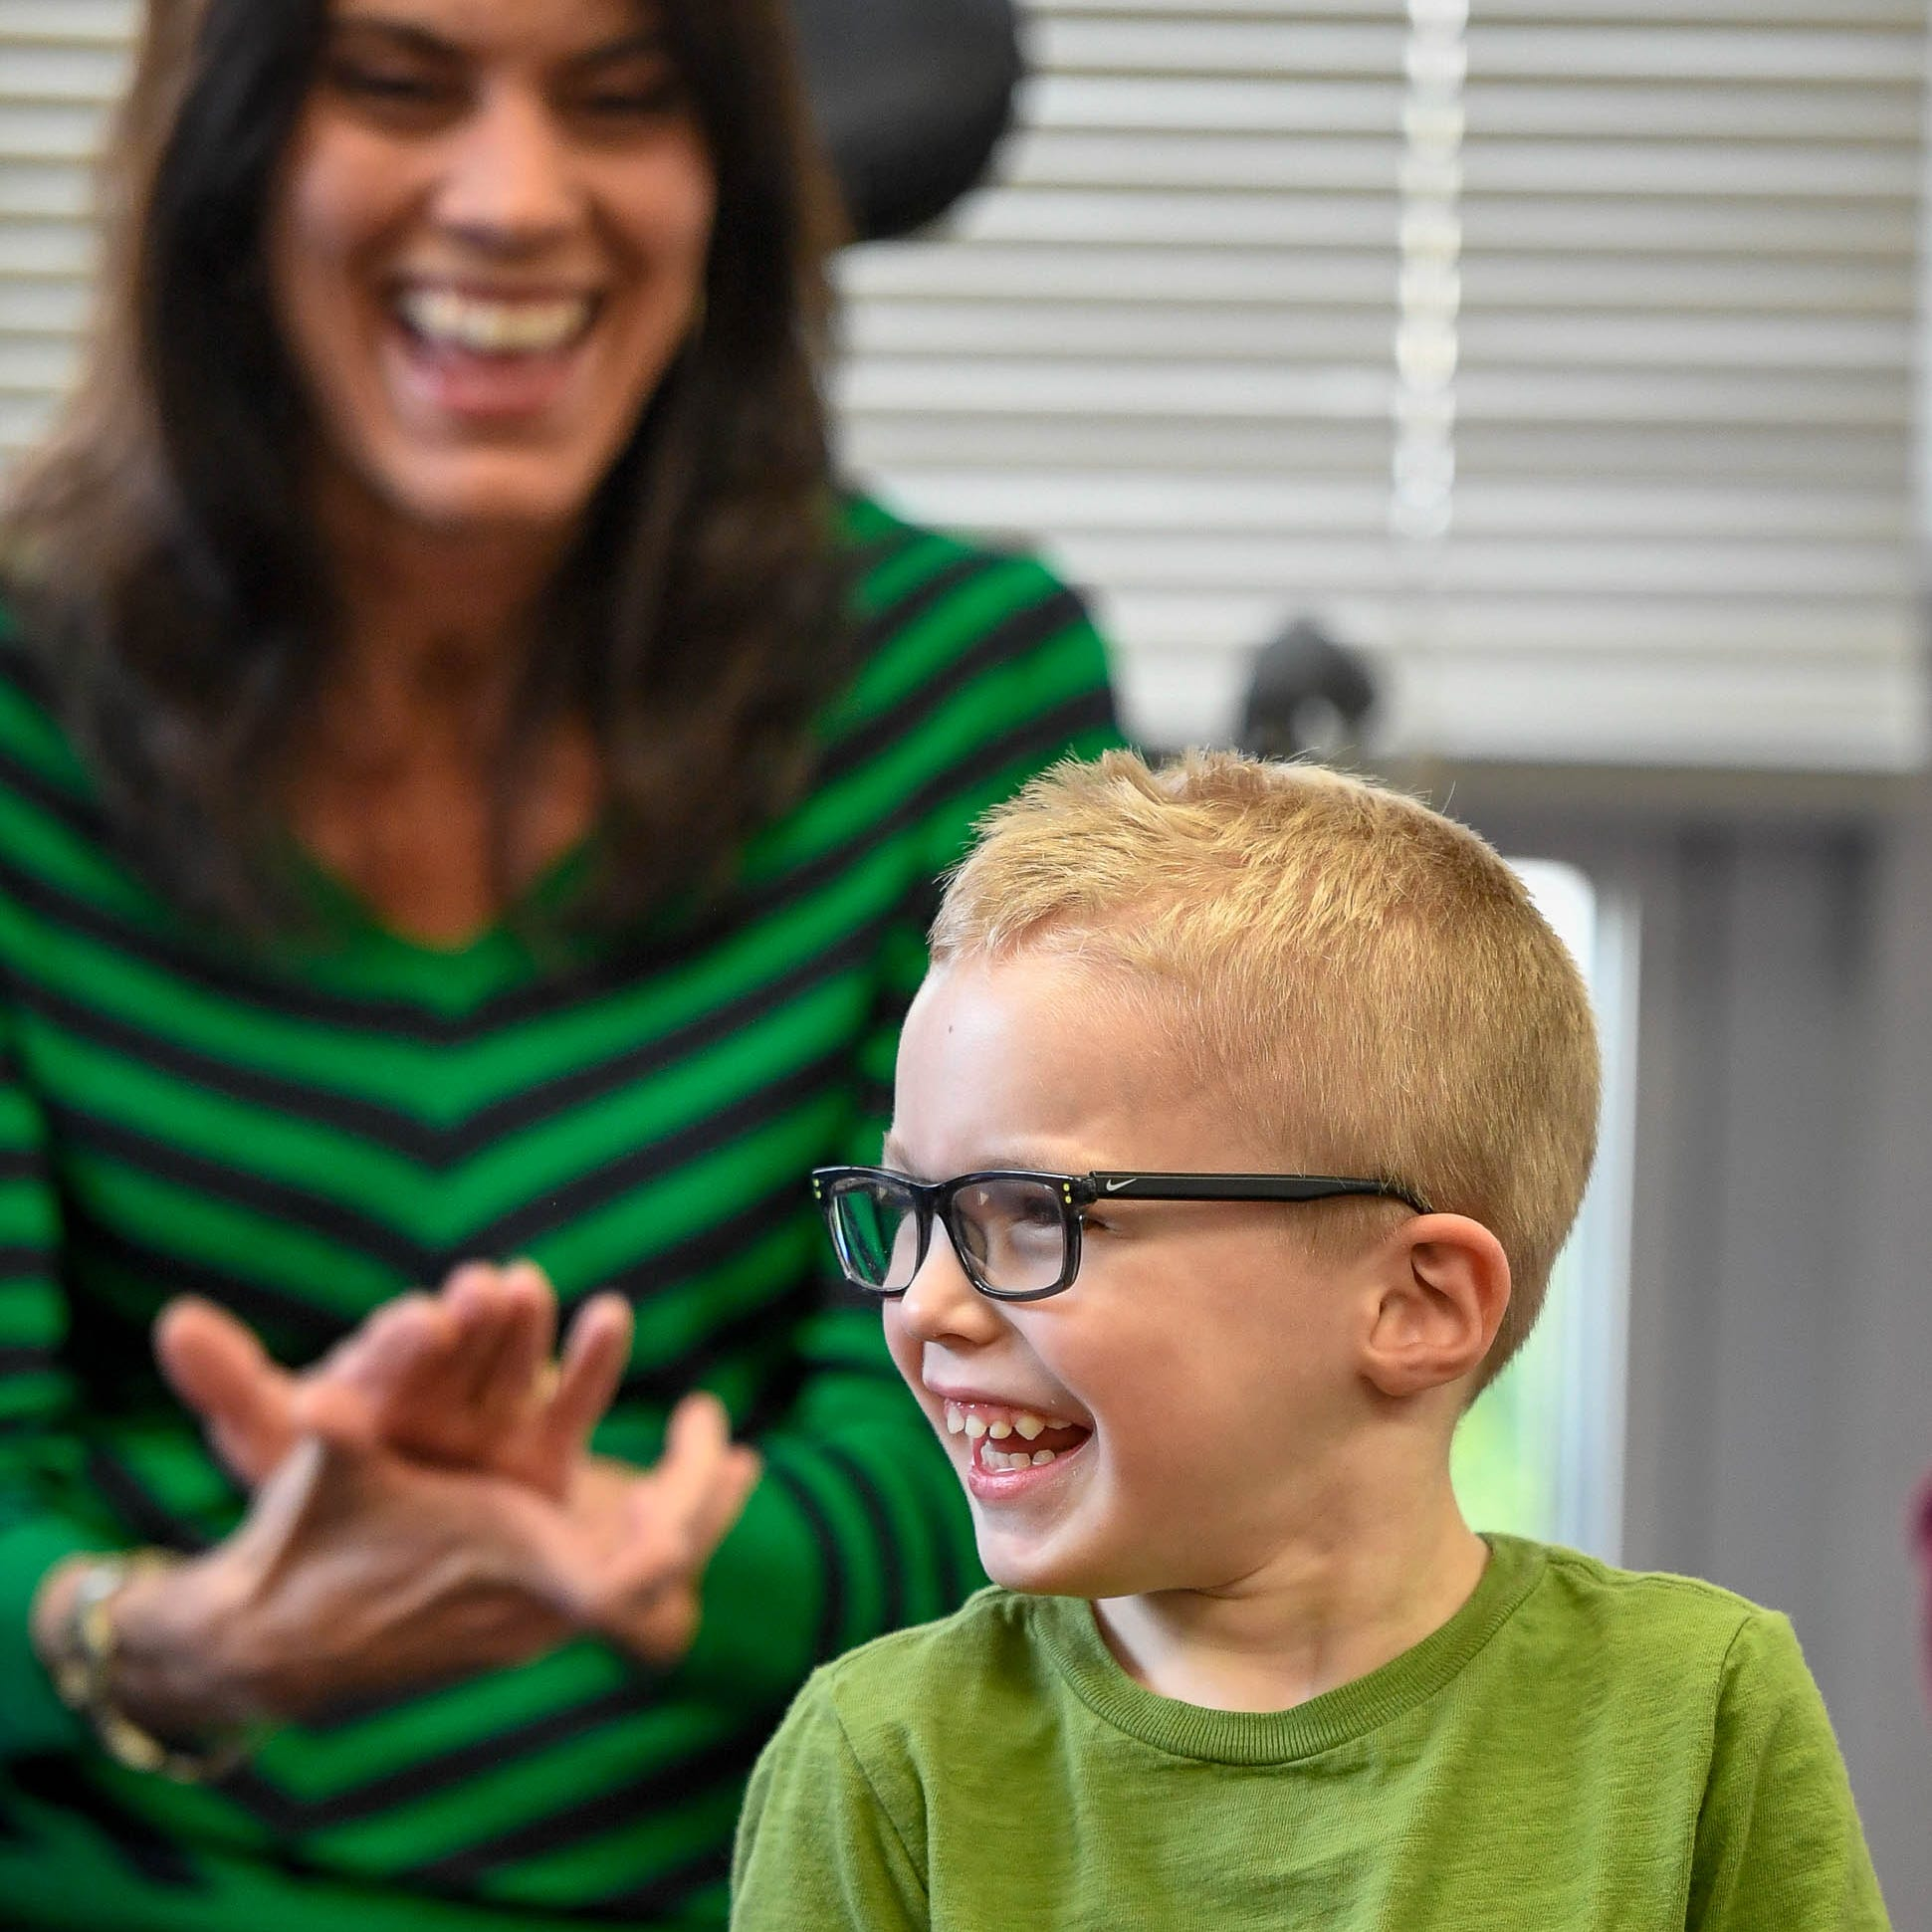 New Easterseals Rehabilitation Center ambassadors, aged 4 and 44, are 'buddies'